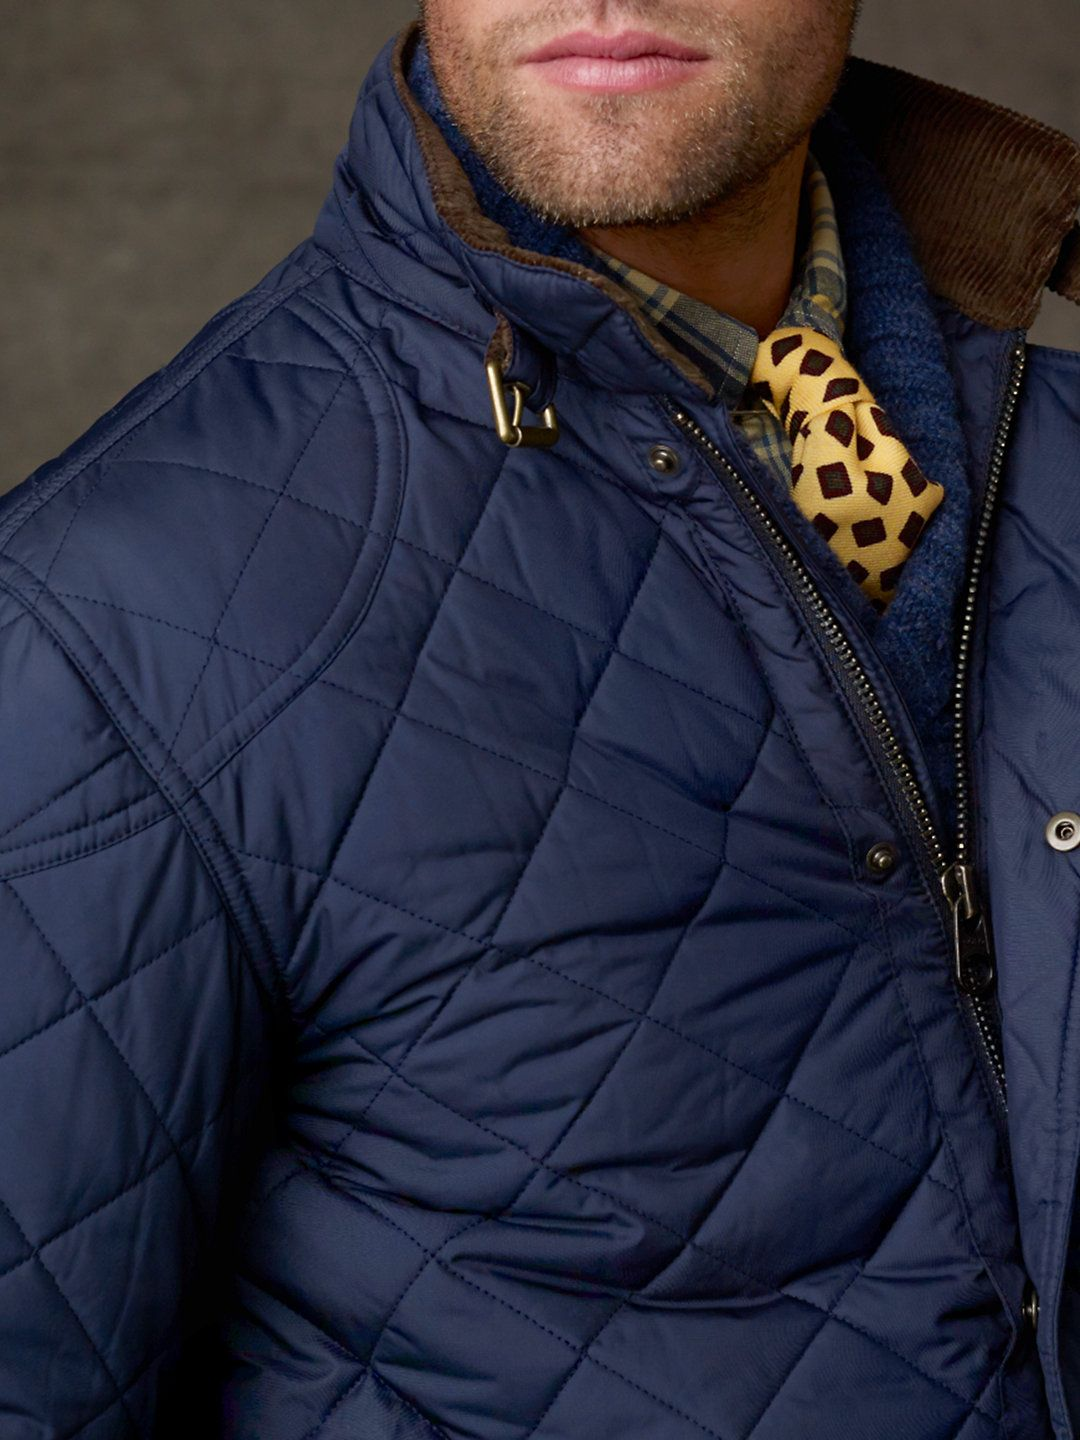 Cadwell Quilted Bomber Jacket - Ralph Lauren.